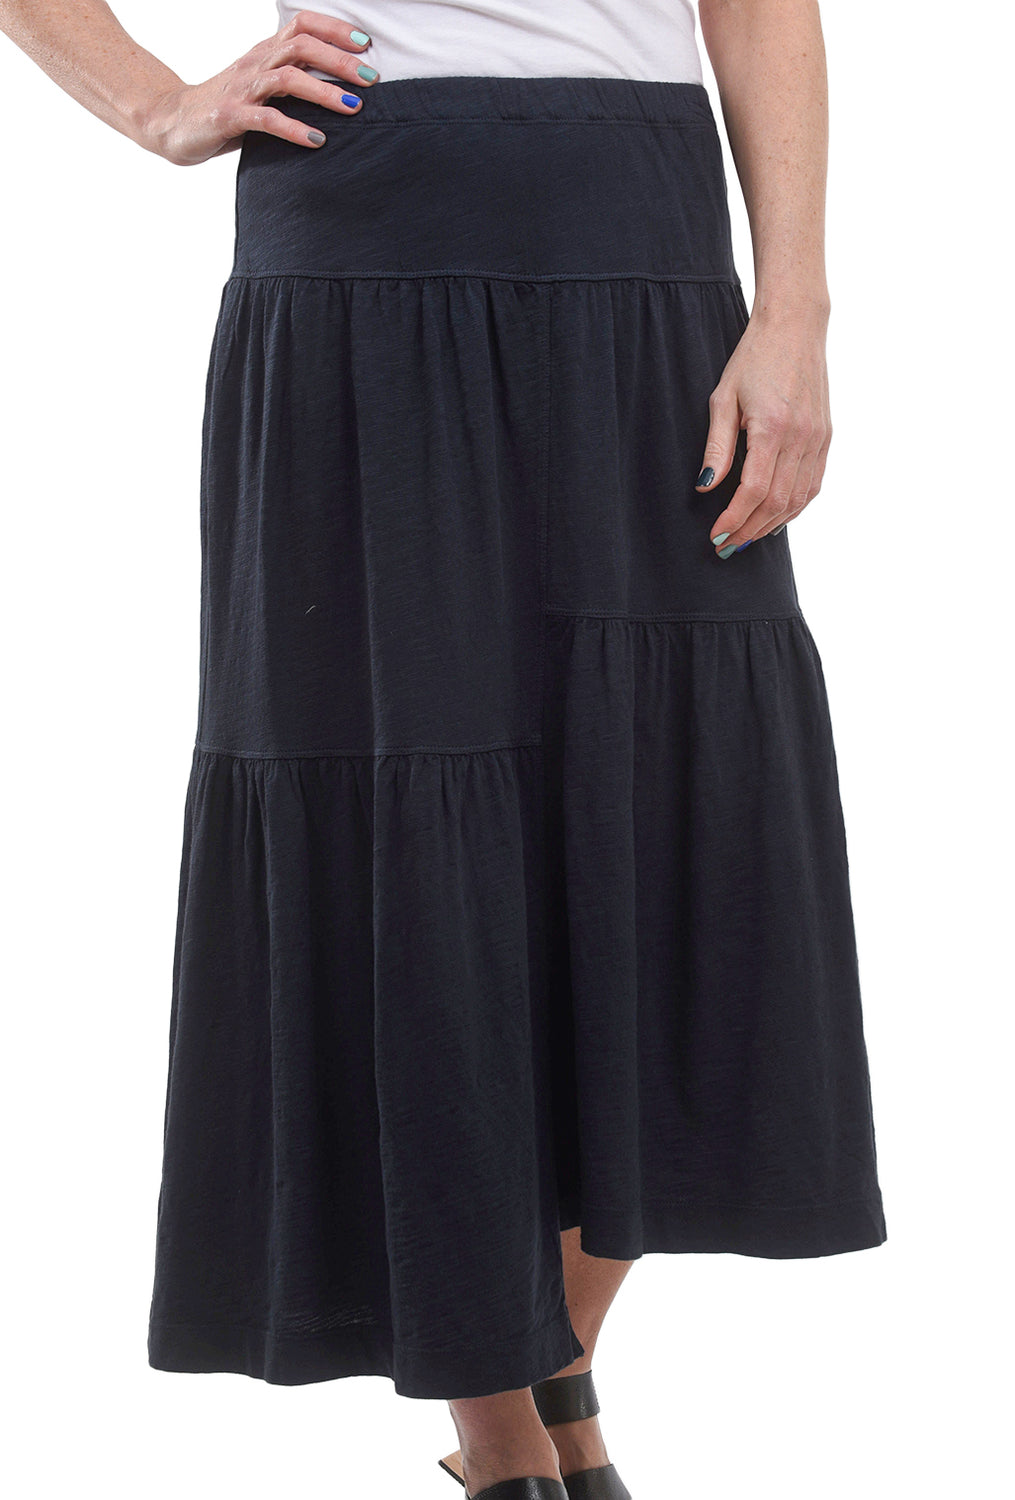 5b5a6f230 Wilt Shifted Tiered Long Skirt, Navy Ink – Evie Lou